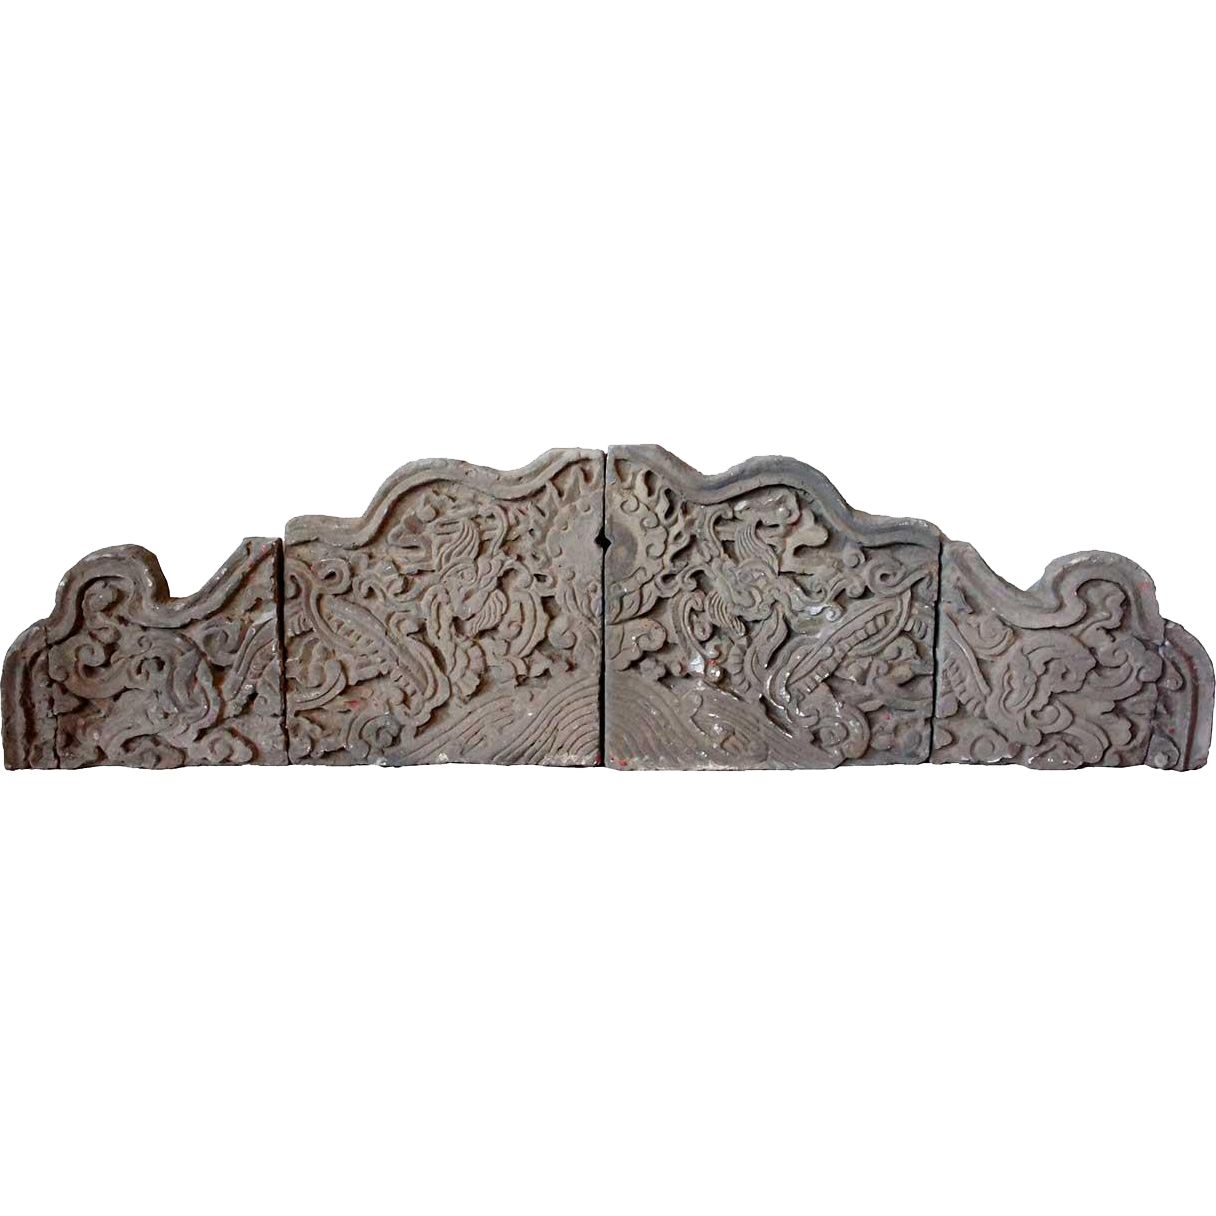 Chinese Shanxi Province Pottery Four-Part Architectural Brick Carving